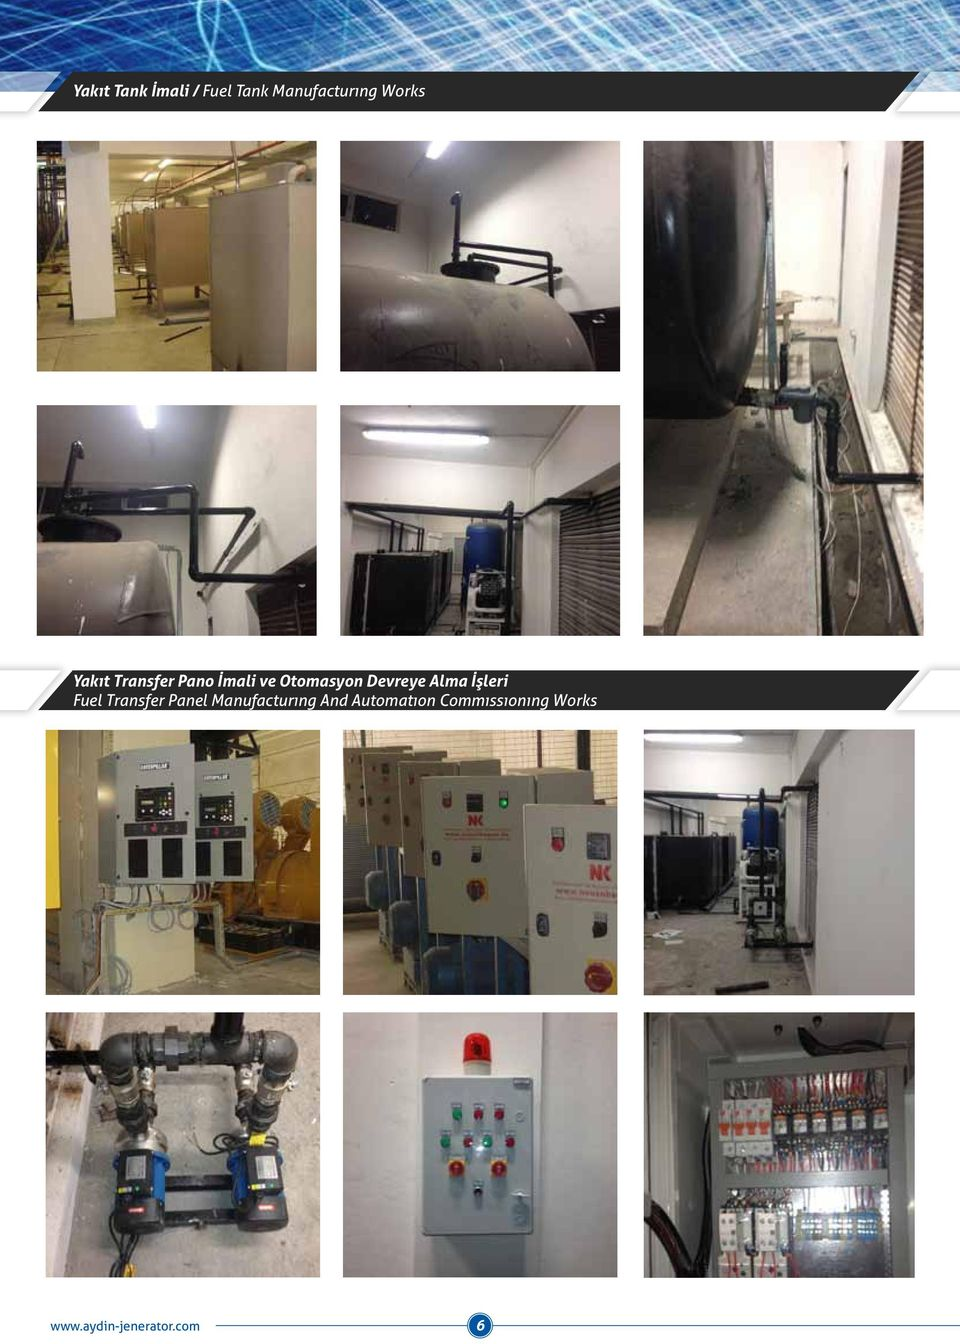 Alma İşleri Fuel Transfer Panel Manufacturıng And